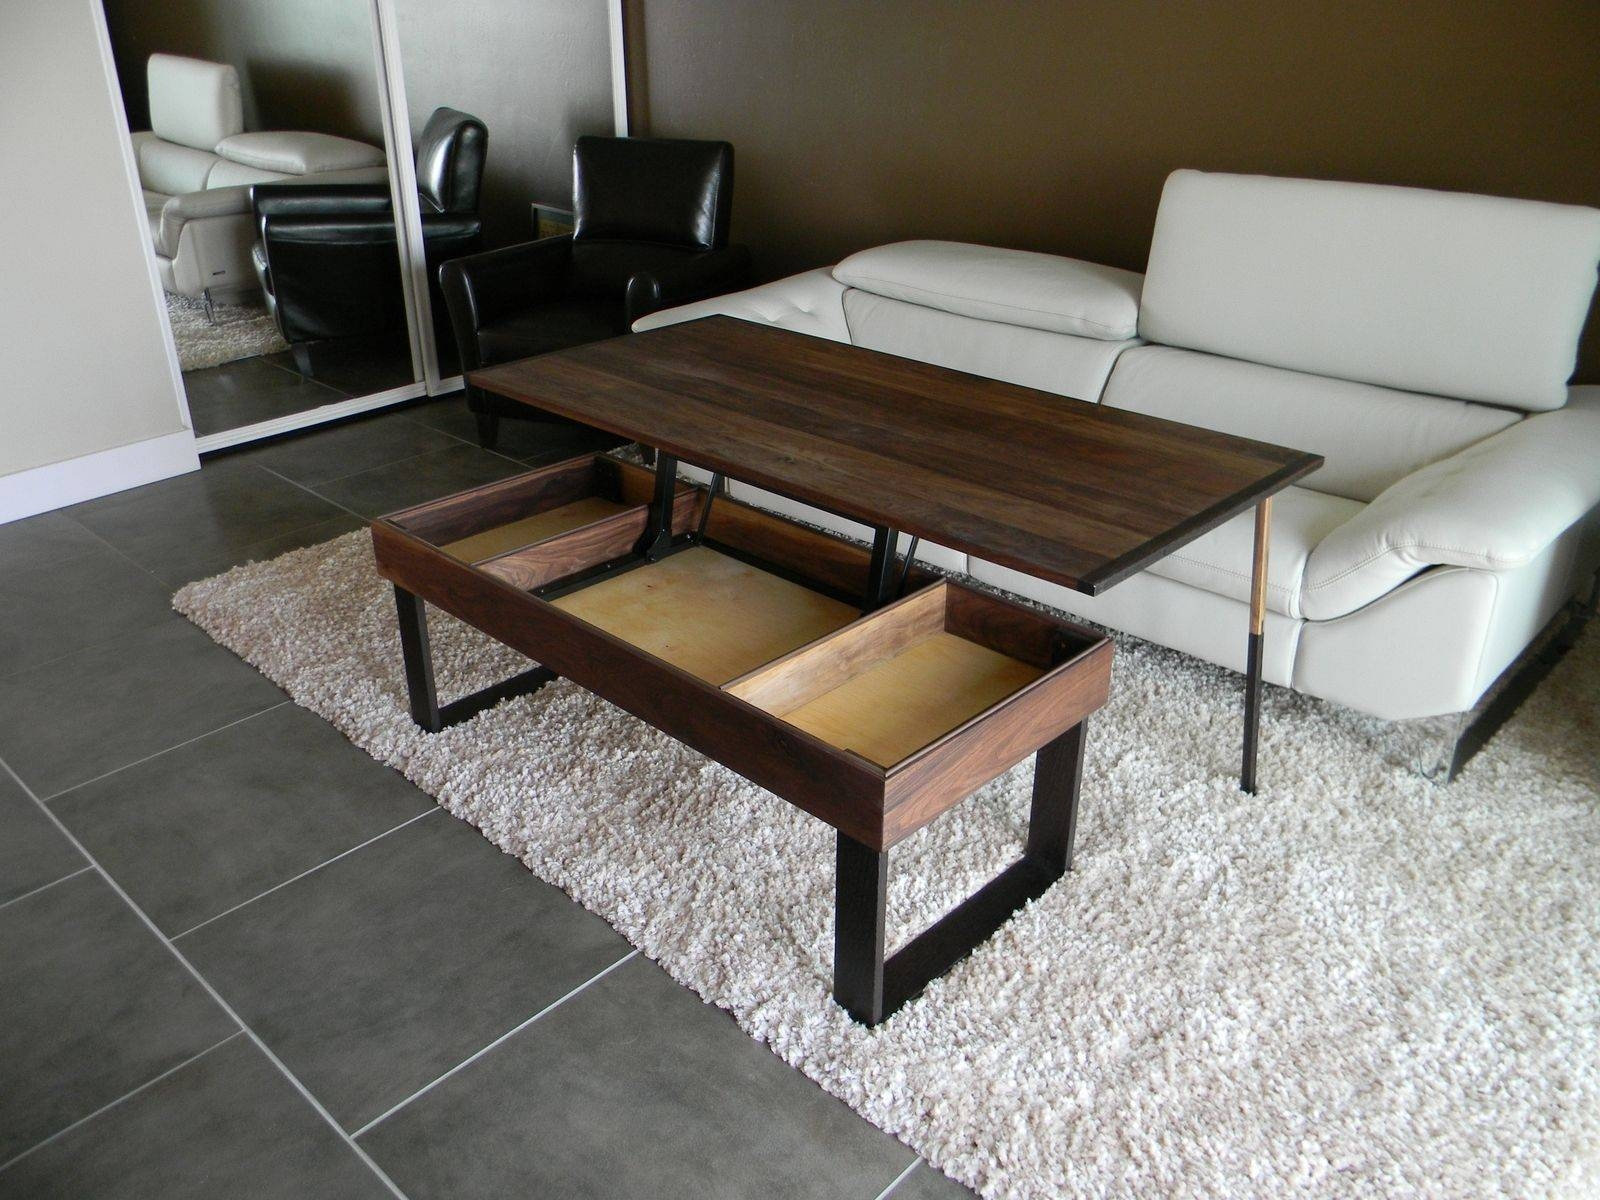 Hand Made Terry's Lift -Top, Pop-Up Walnut And Wenge Transformer with regard to Lift Top Coffee Tables (Image 14 of 30)